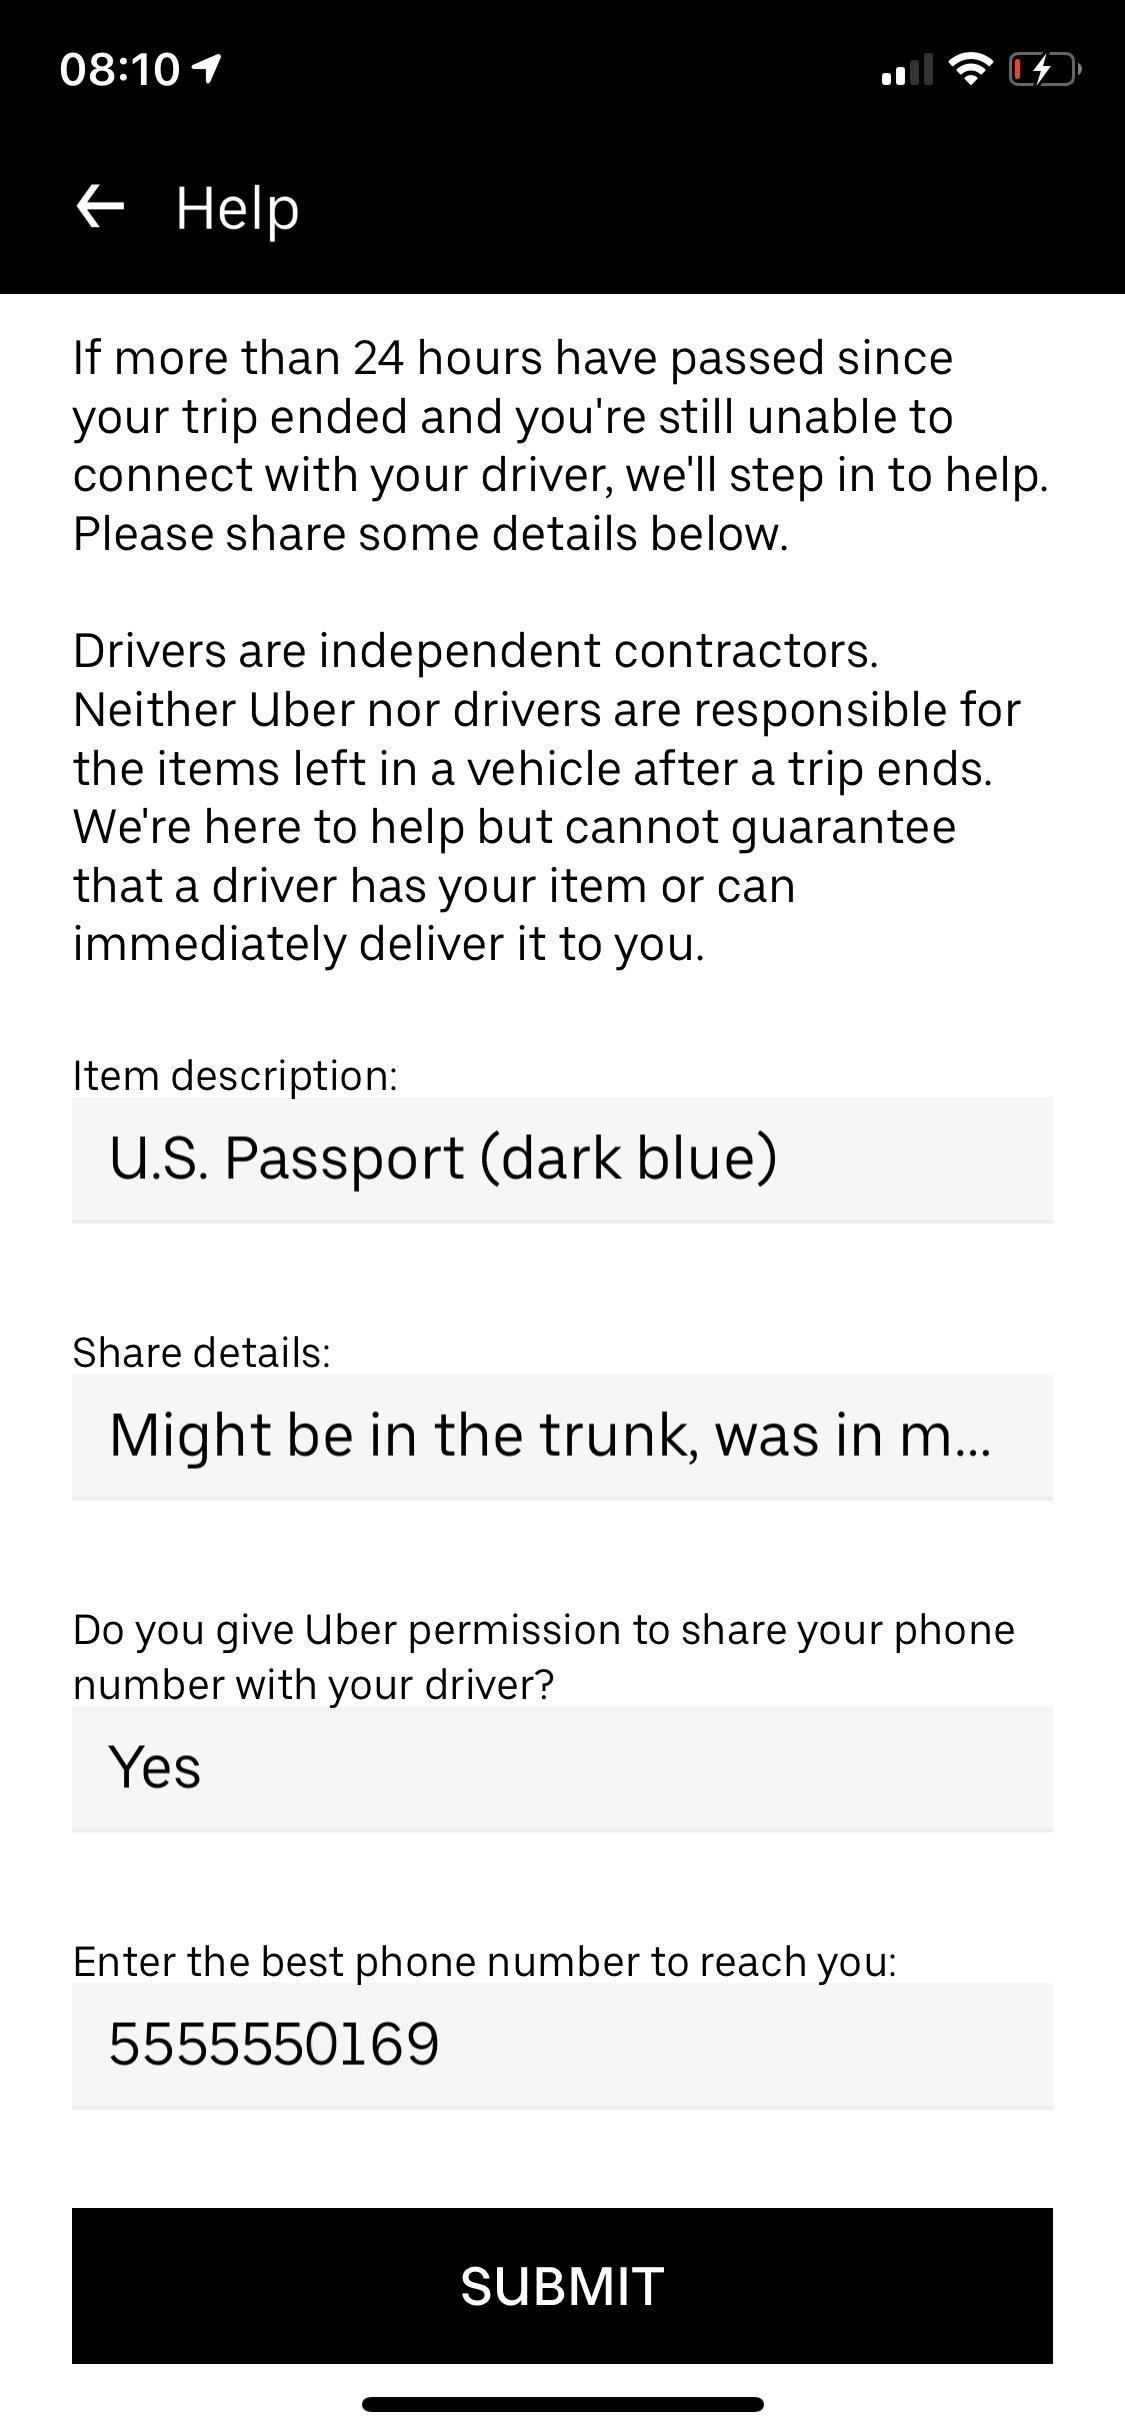 How to get your lost items back from an Uber driver (and what to do if they do not reply)